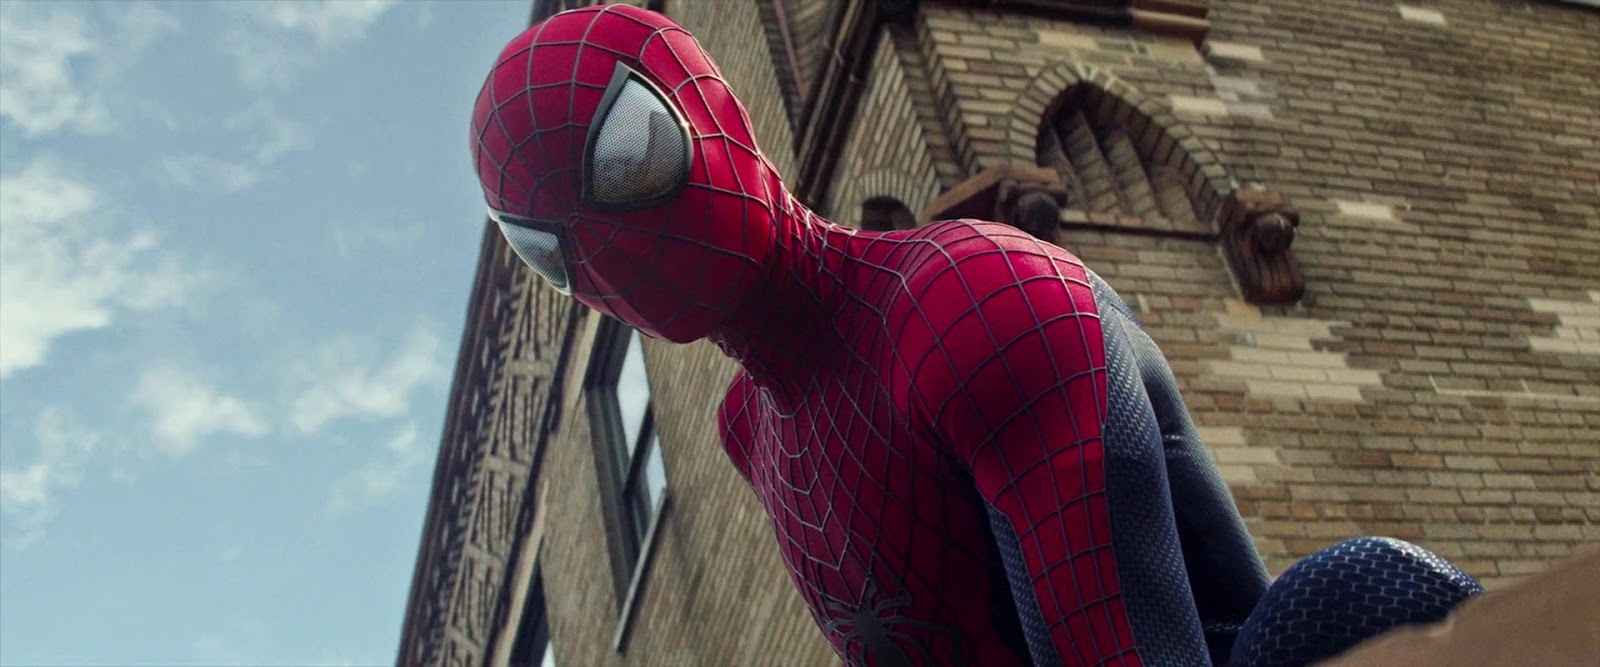 The Amazing Spider Man 2 (2014) S2 s The Amazing Spider Man 2 (2014)